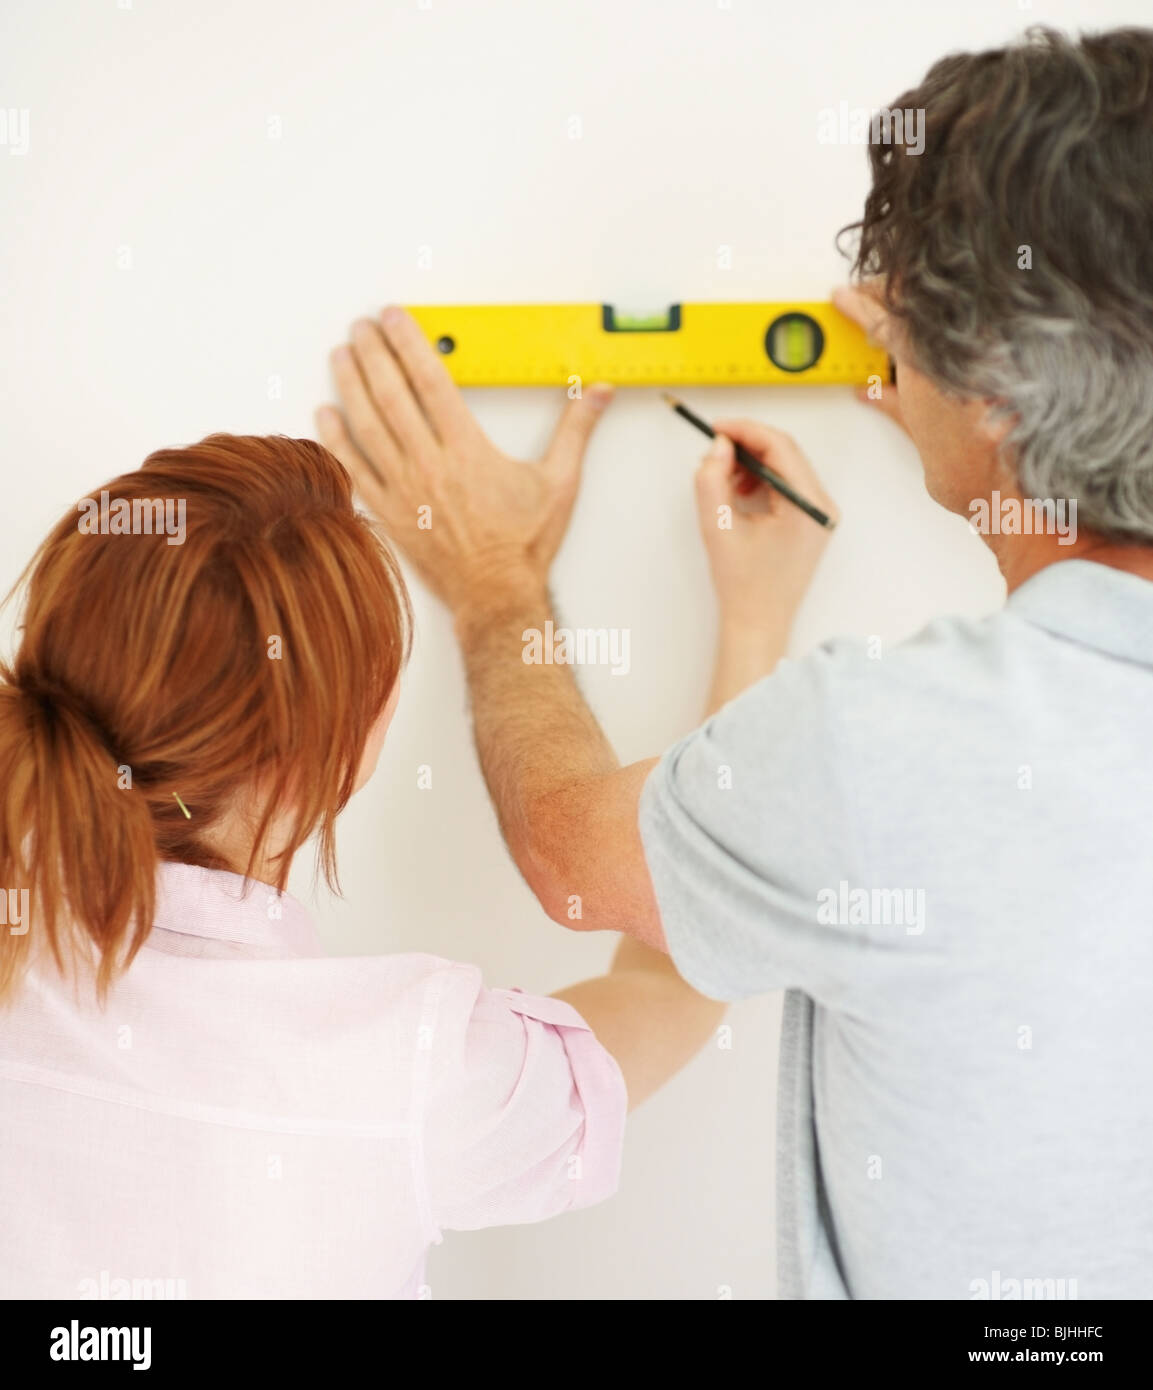 Couple marking a straight line on wall - Stock Image